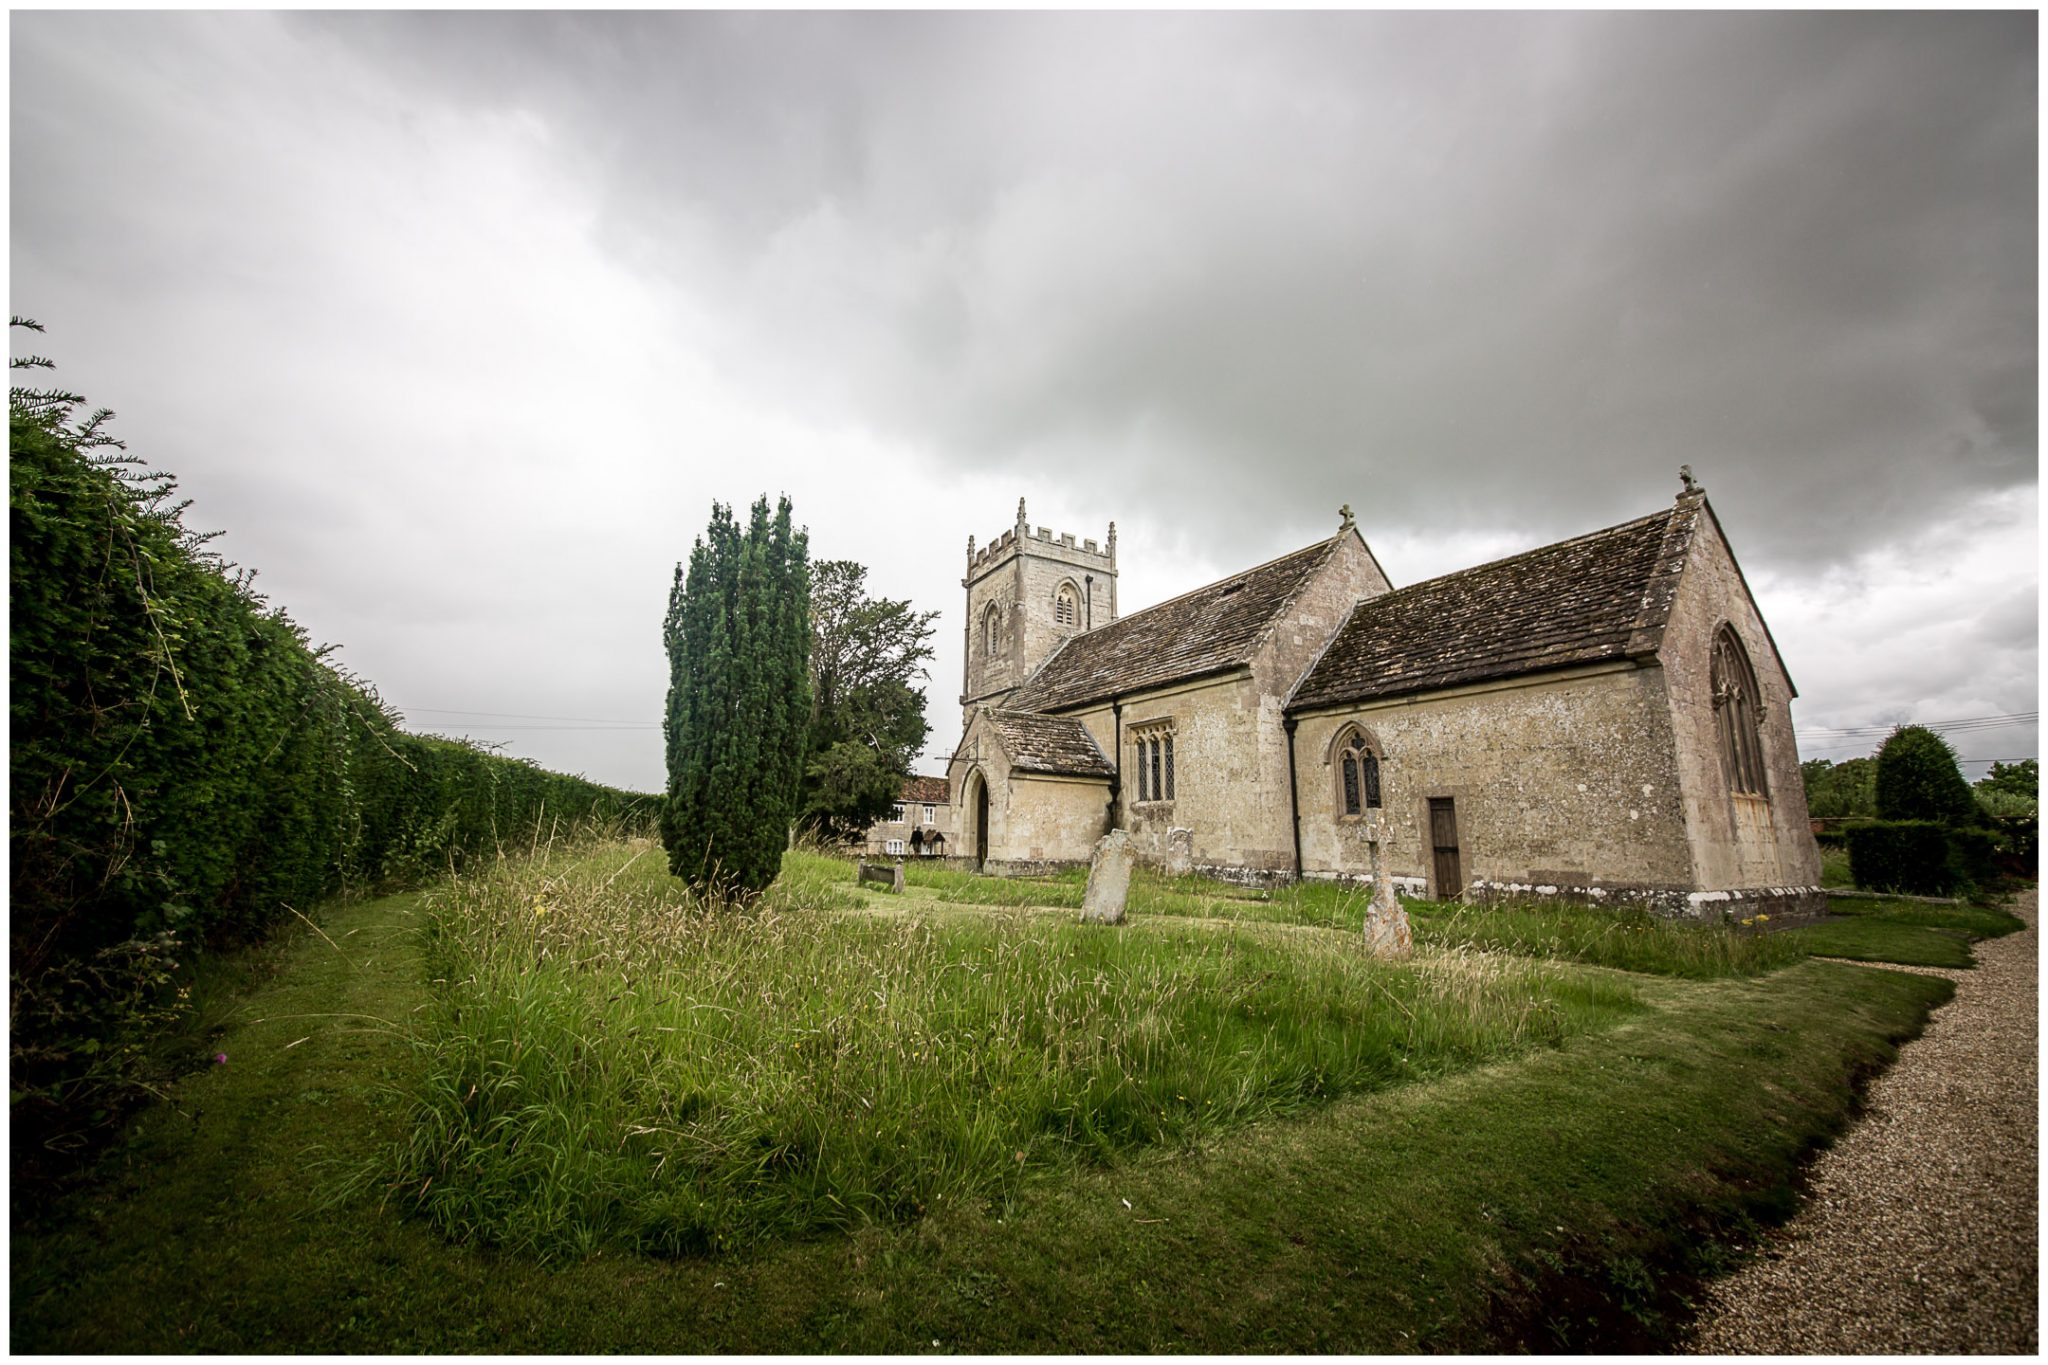 St Peter's Church at Hinton St Mary, Dorset, on a rainy Summer's day